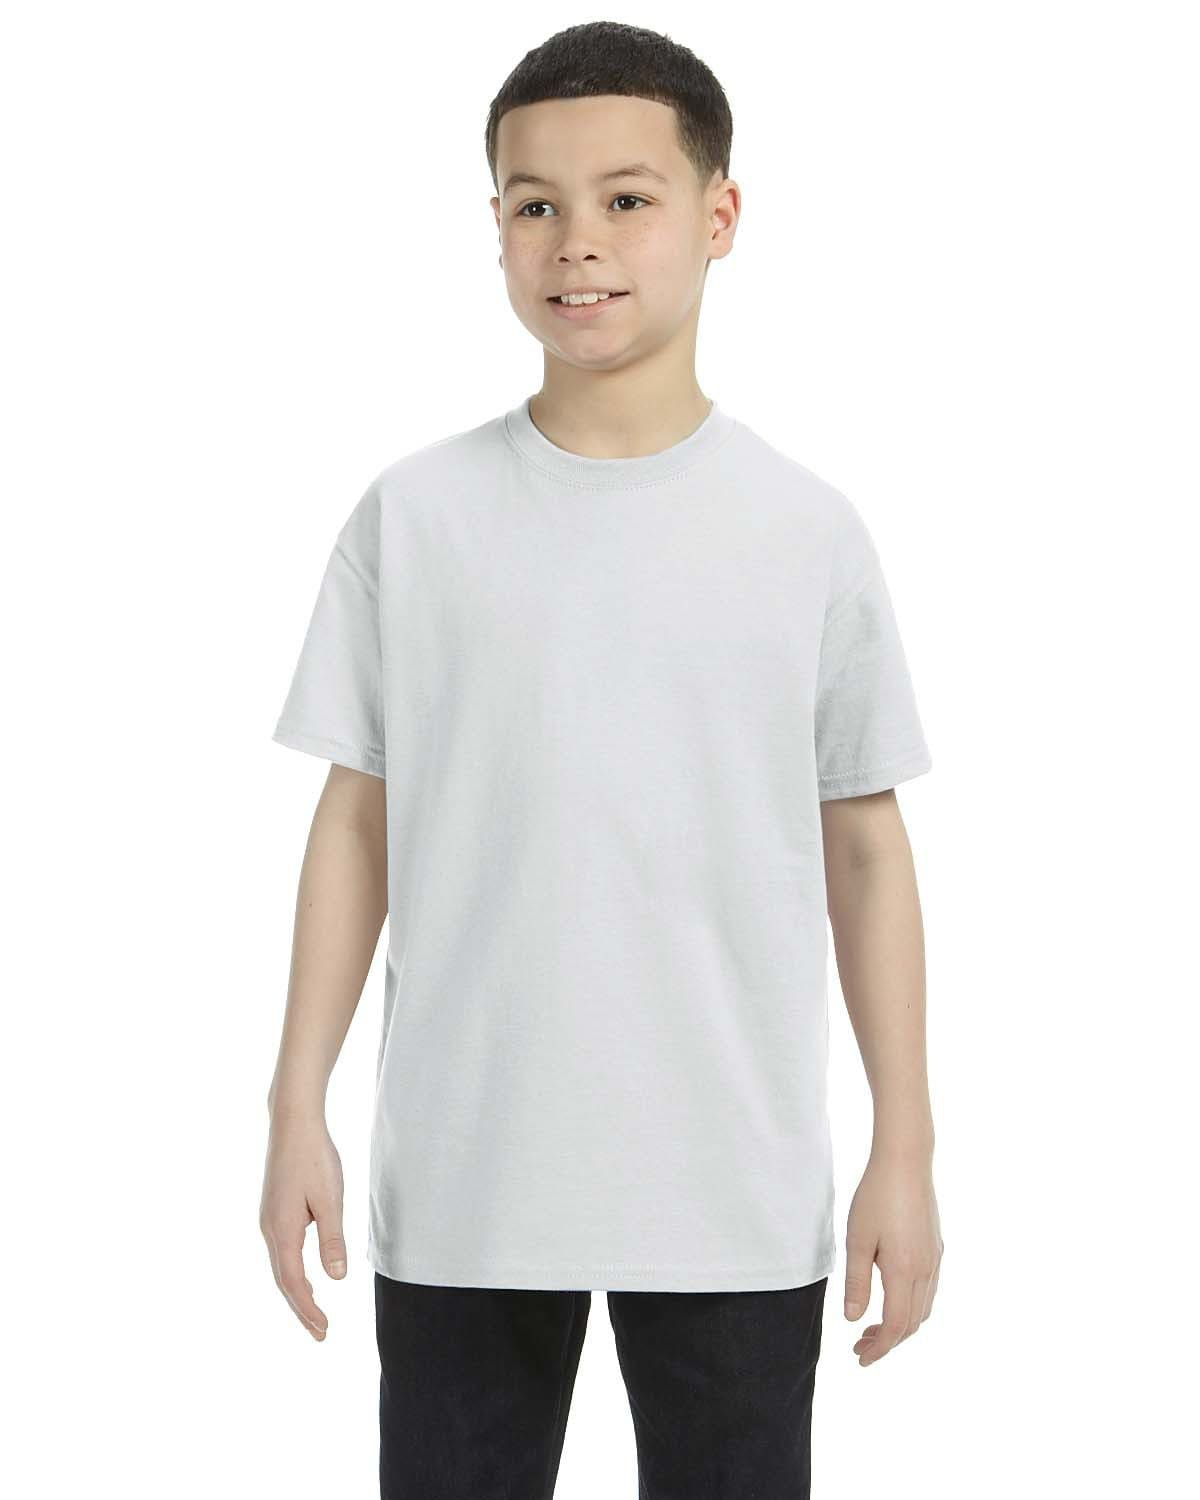 g500b-youth-heavy-cotton-5-3-oz-t-shirt-xl-XL-ASH GREY-Oasispromos